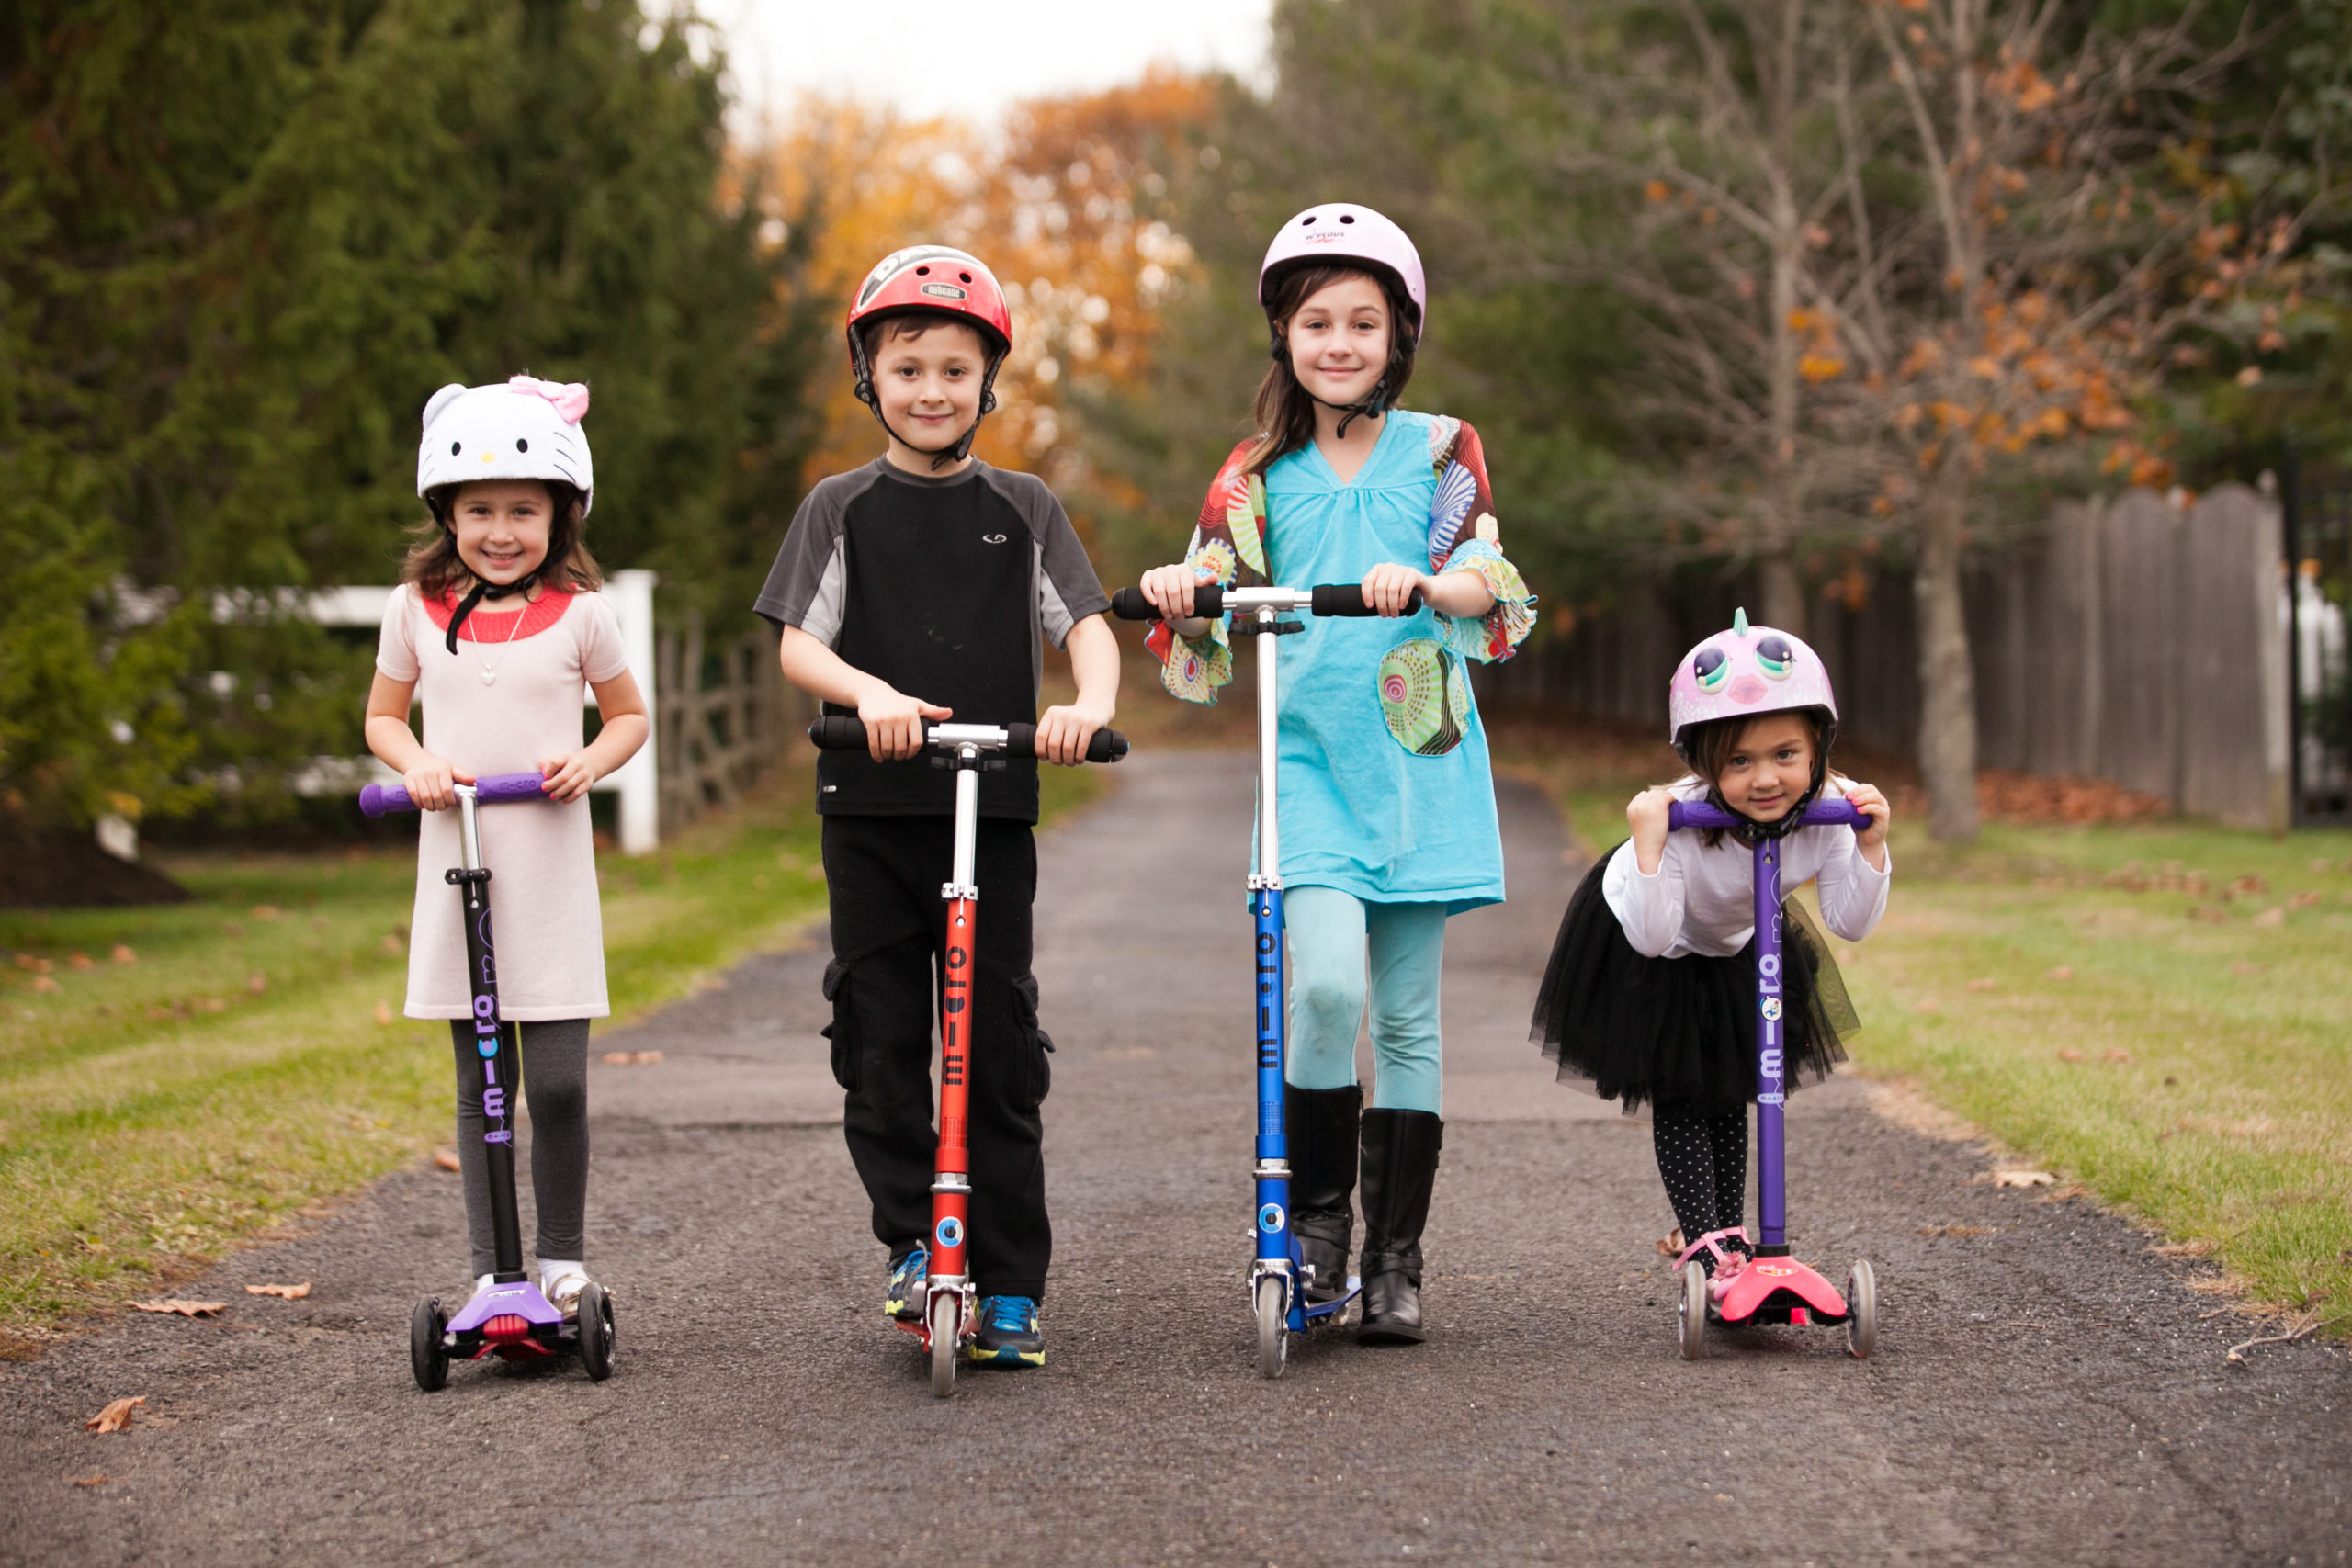 Children on Scooters